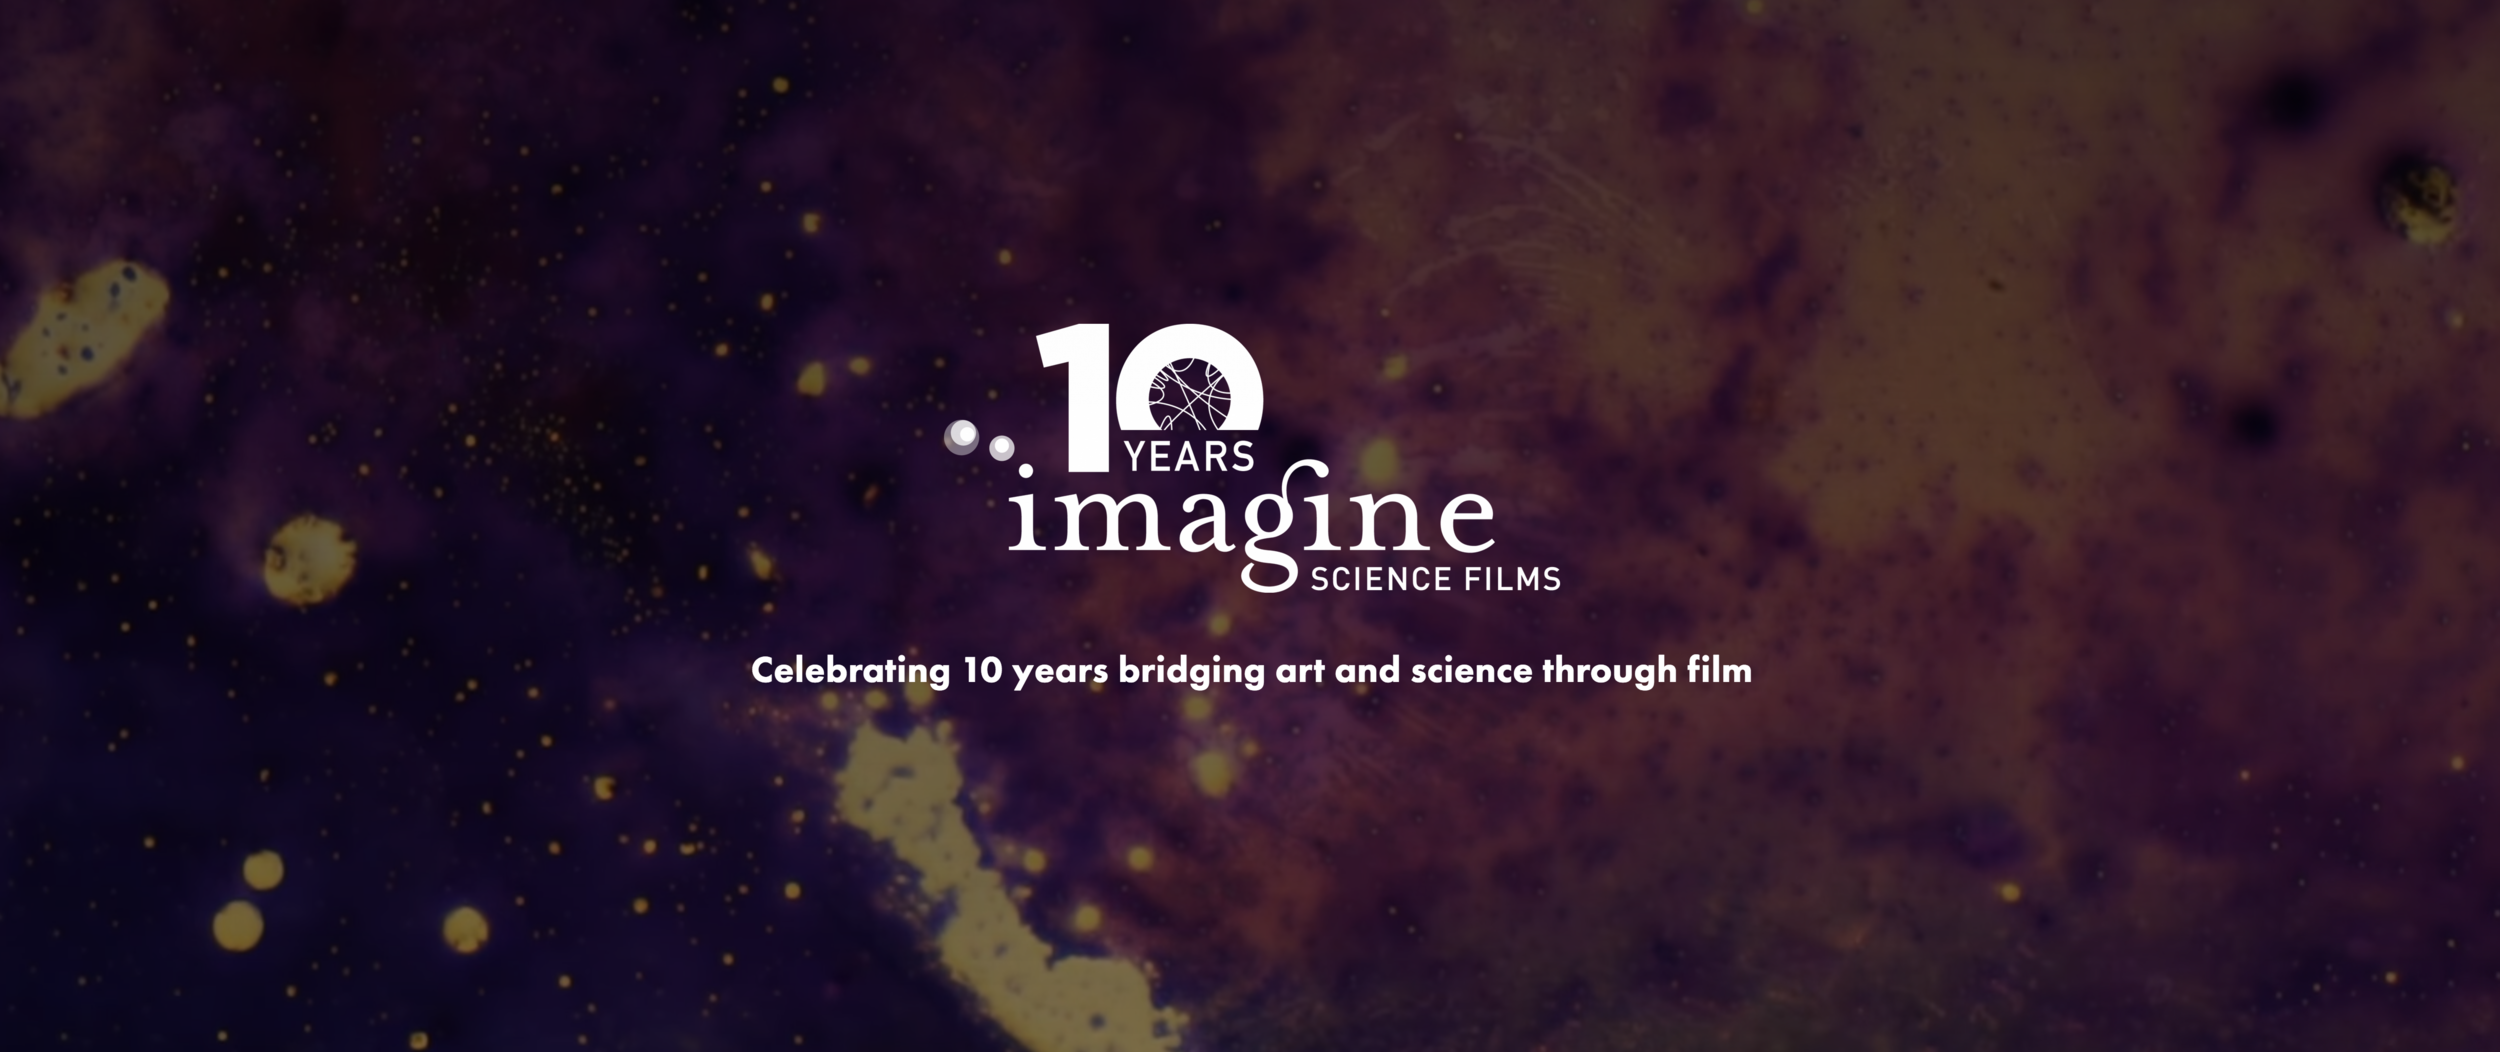 The New School, Tishman Auditorium    Friday, October 13, 6pm Reception + 7pm screening   MOSAIC , the science-driven anthology film featuring chapters from ten visionary filmmakers and stories from the most influential scientists of our time launches Opening Night of Imagine Science Films Festival 2017.    Directors: Miryam Charles, Josephine Decker, Alexis Gambis, Barry J Gibb, Ian Harnarine, Noah Hutton, Demelza Kooij, Jeannette Louie, Rachel Mayeri, Sally Warring   Get a first look at my chapter,  Realm of An Inner Child !   http://imaginesciencefilms.org/ny10/chimera-experiments